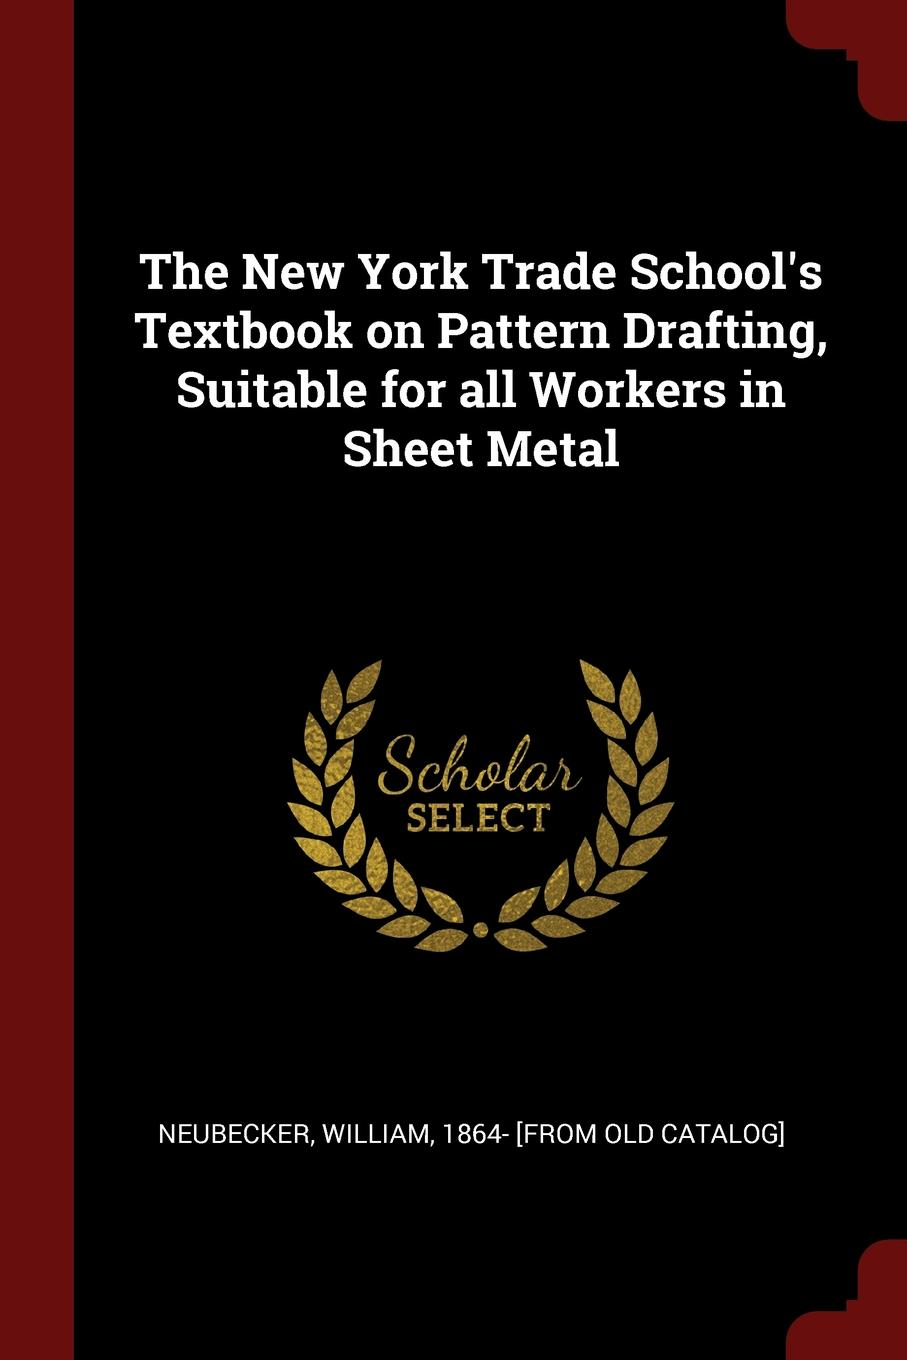 The New York Trade School.s Textbook on Pattern Drafting, Suitable for all Workers in Sheet Metal